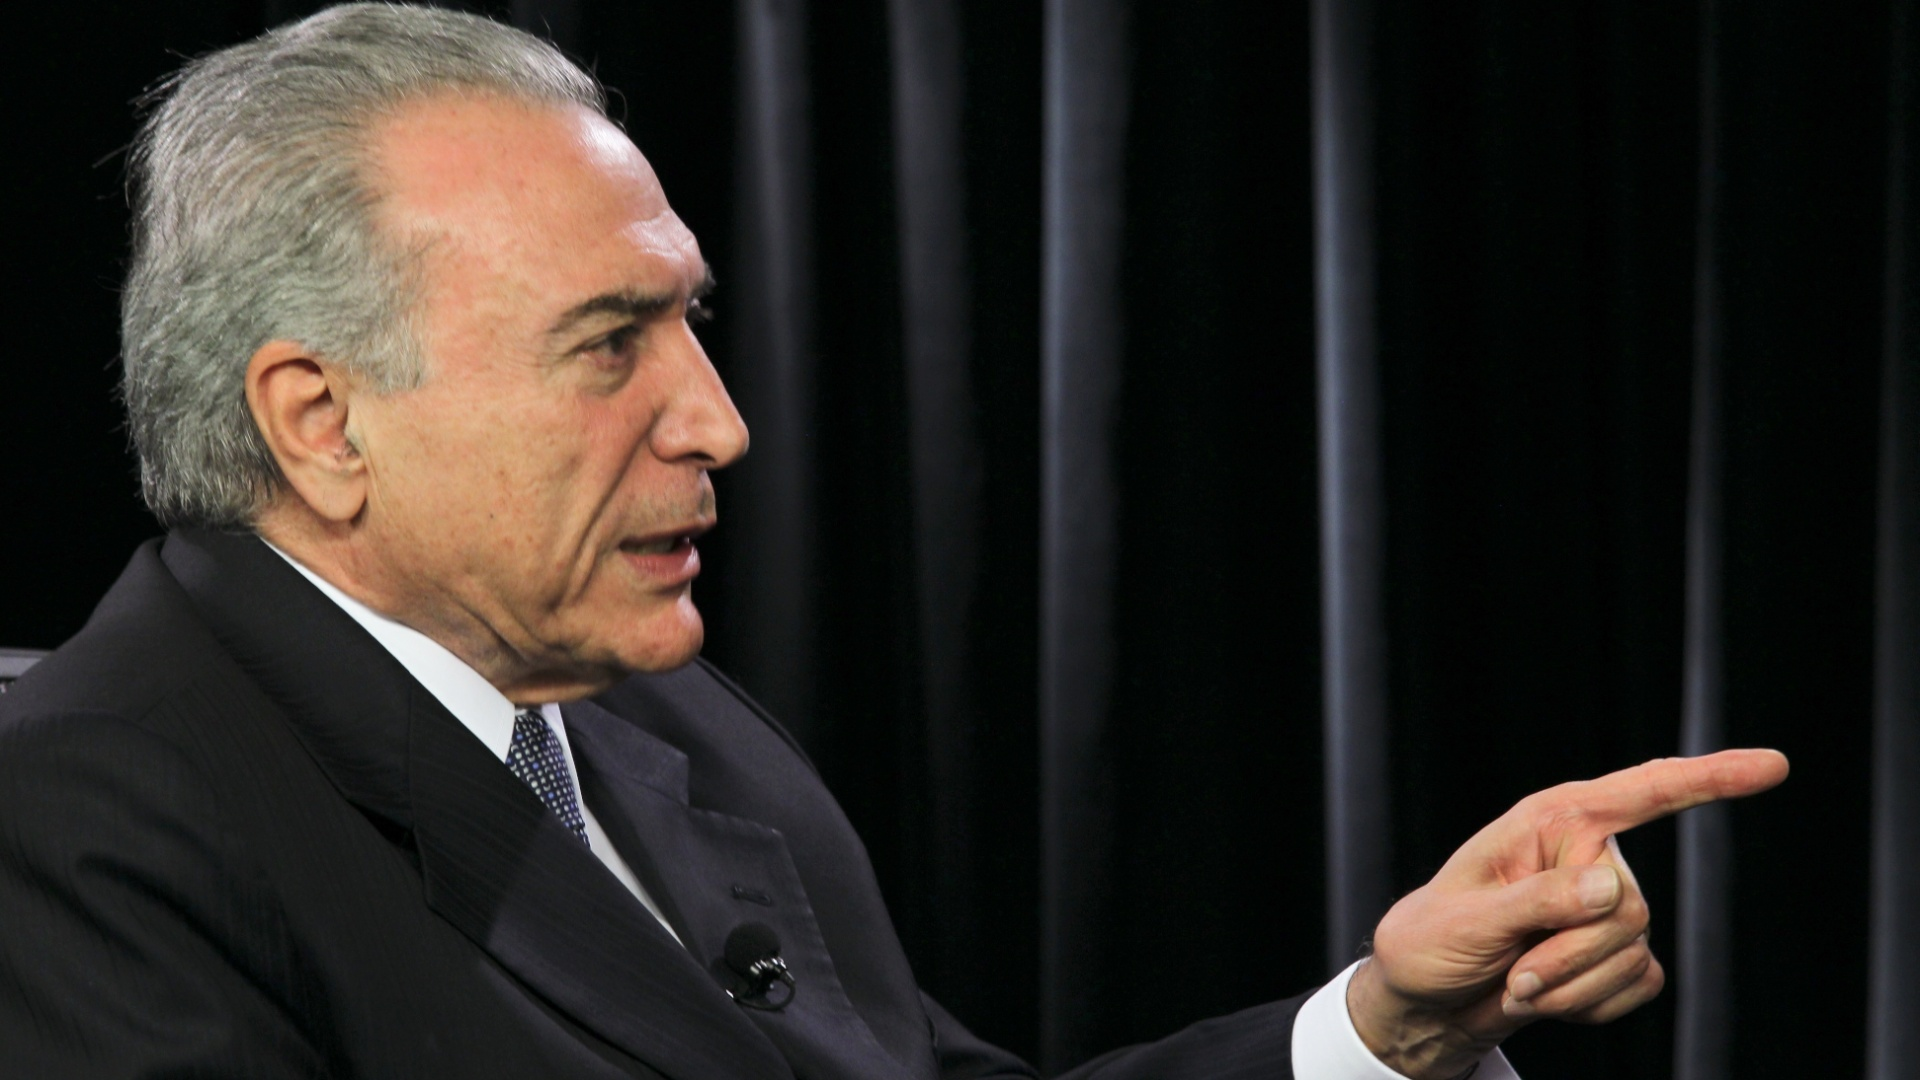 Michel Temer no Poder e Poltica